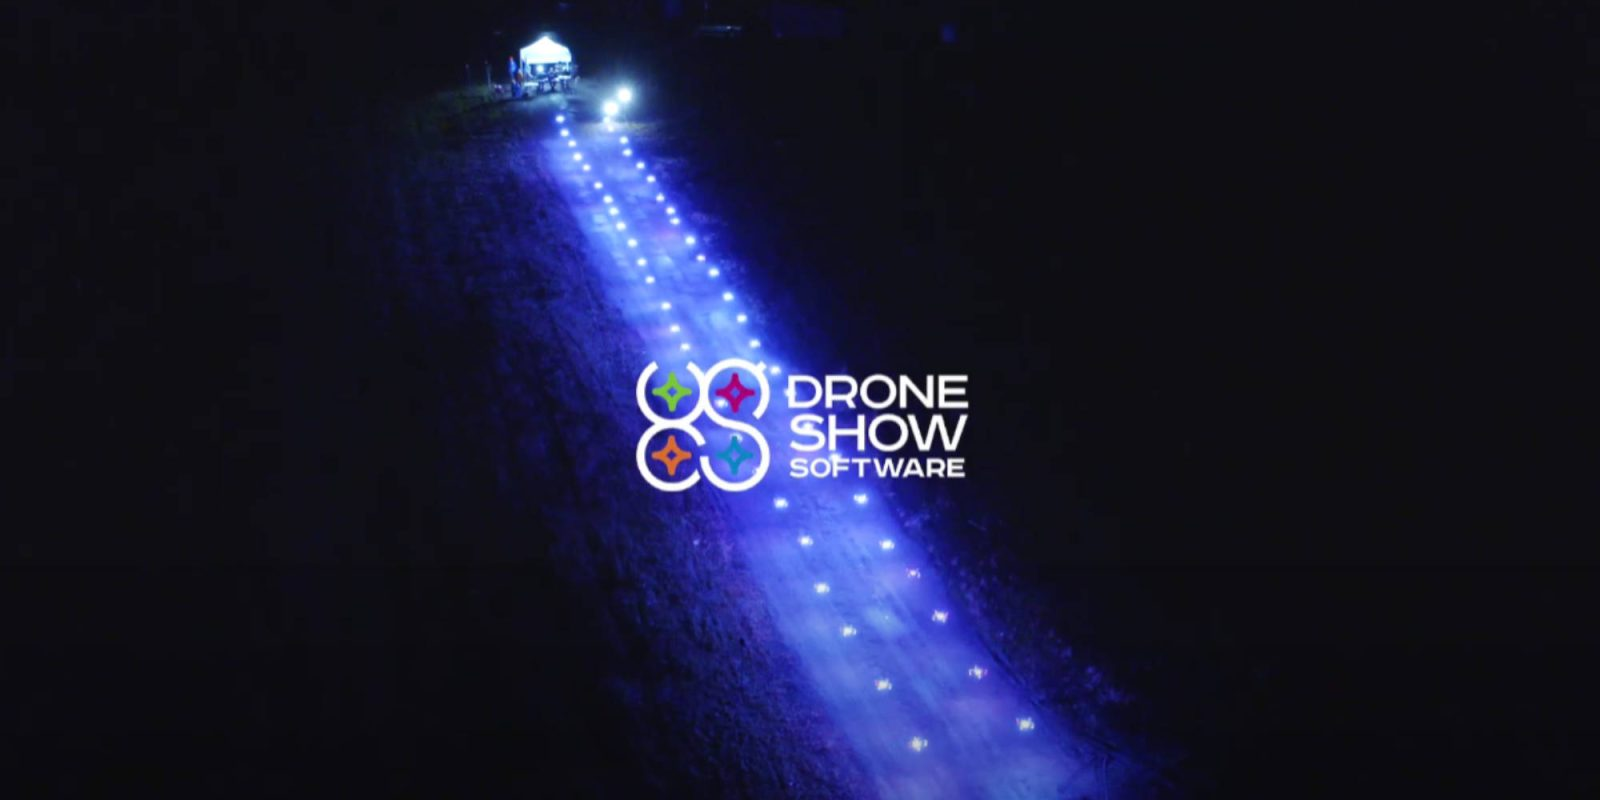 Winner of the inaugural Drone Show Choreography Competition - DroneDJ